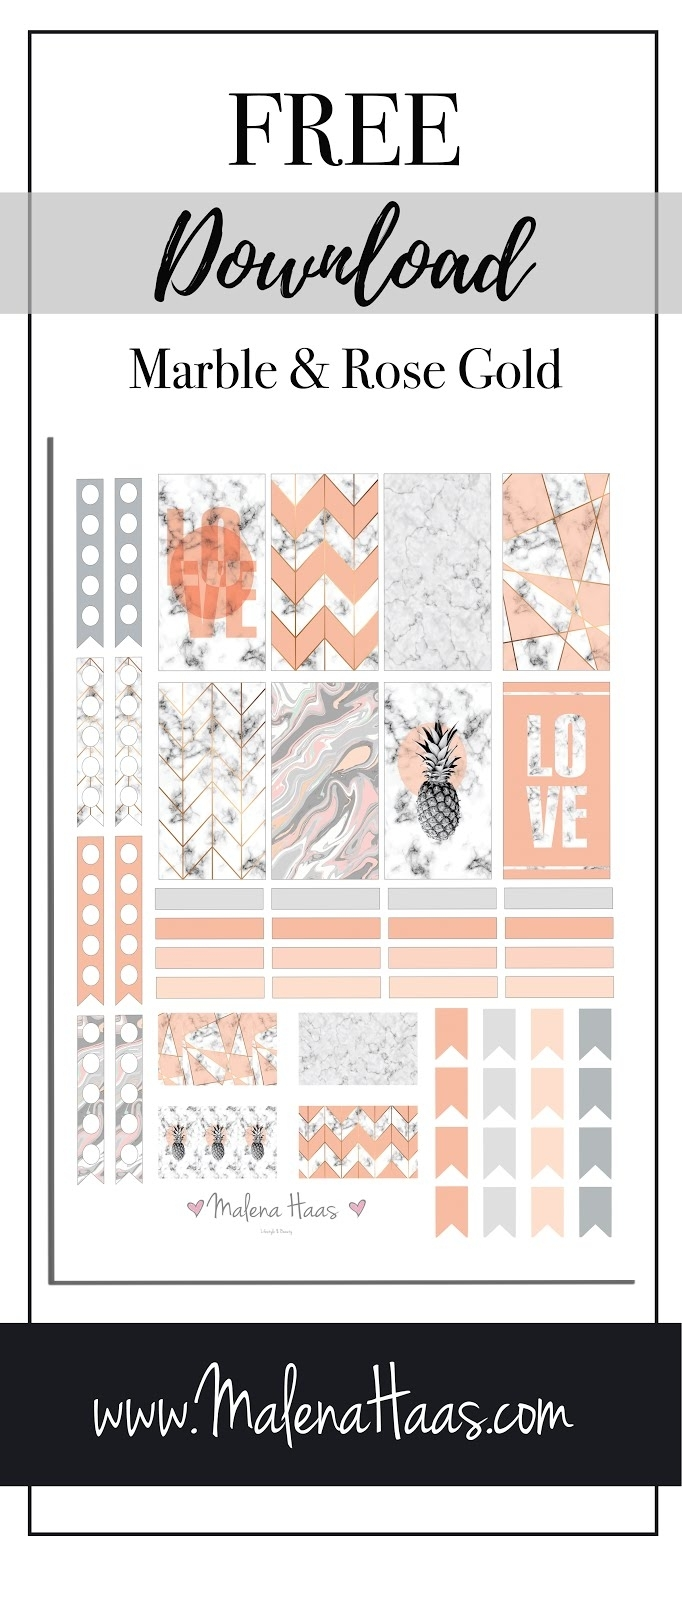 Malena Haas: ❤ Freebie Friday❤ Pink And Rose Gold Marble Stickers intended for Marble Themed Blank Class Schedule Template